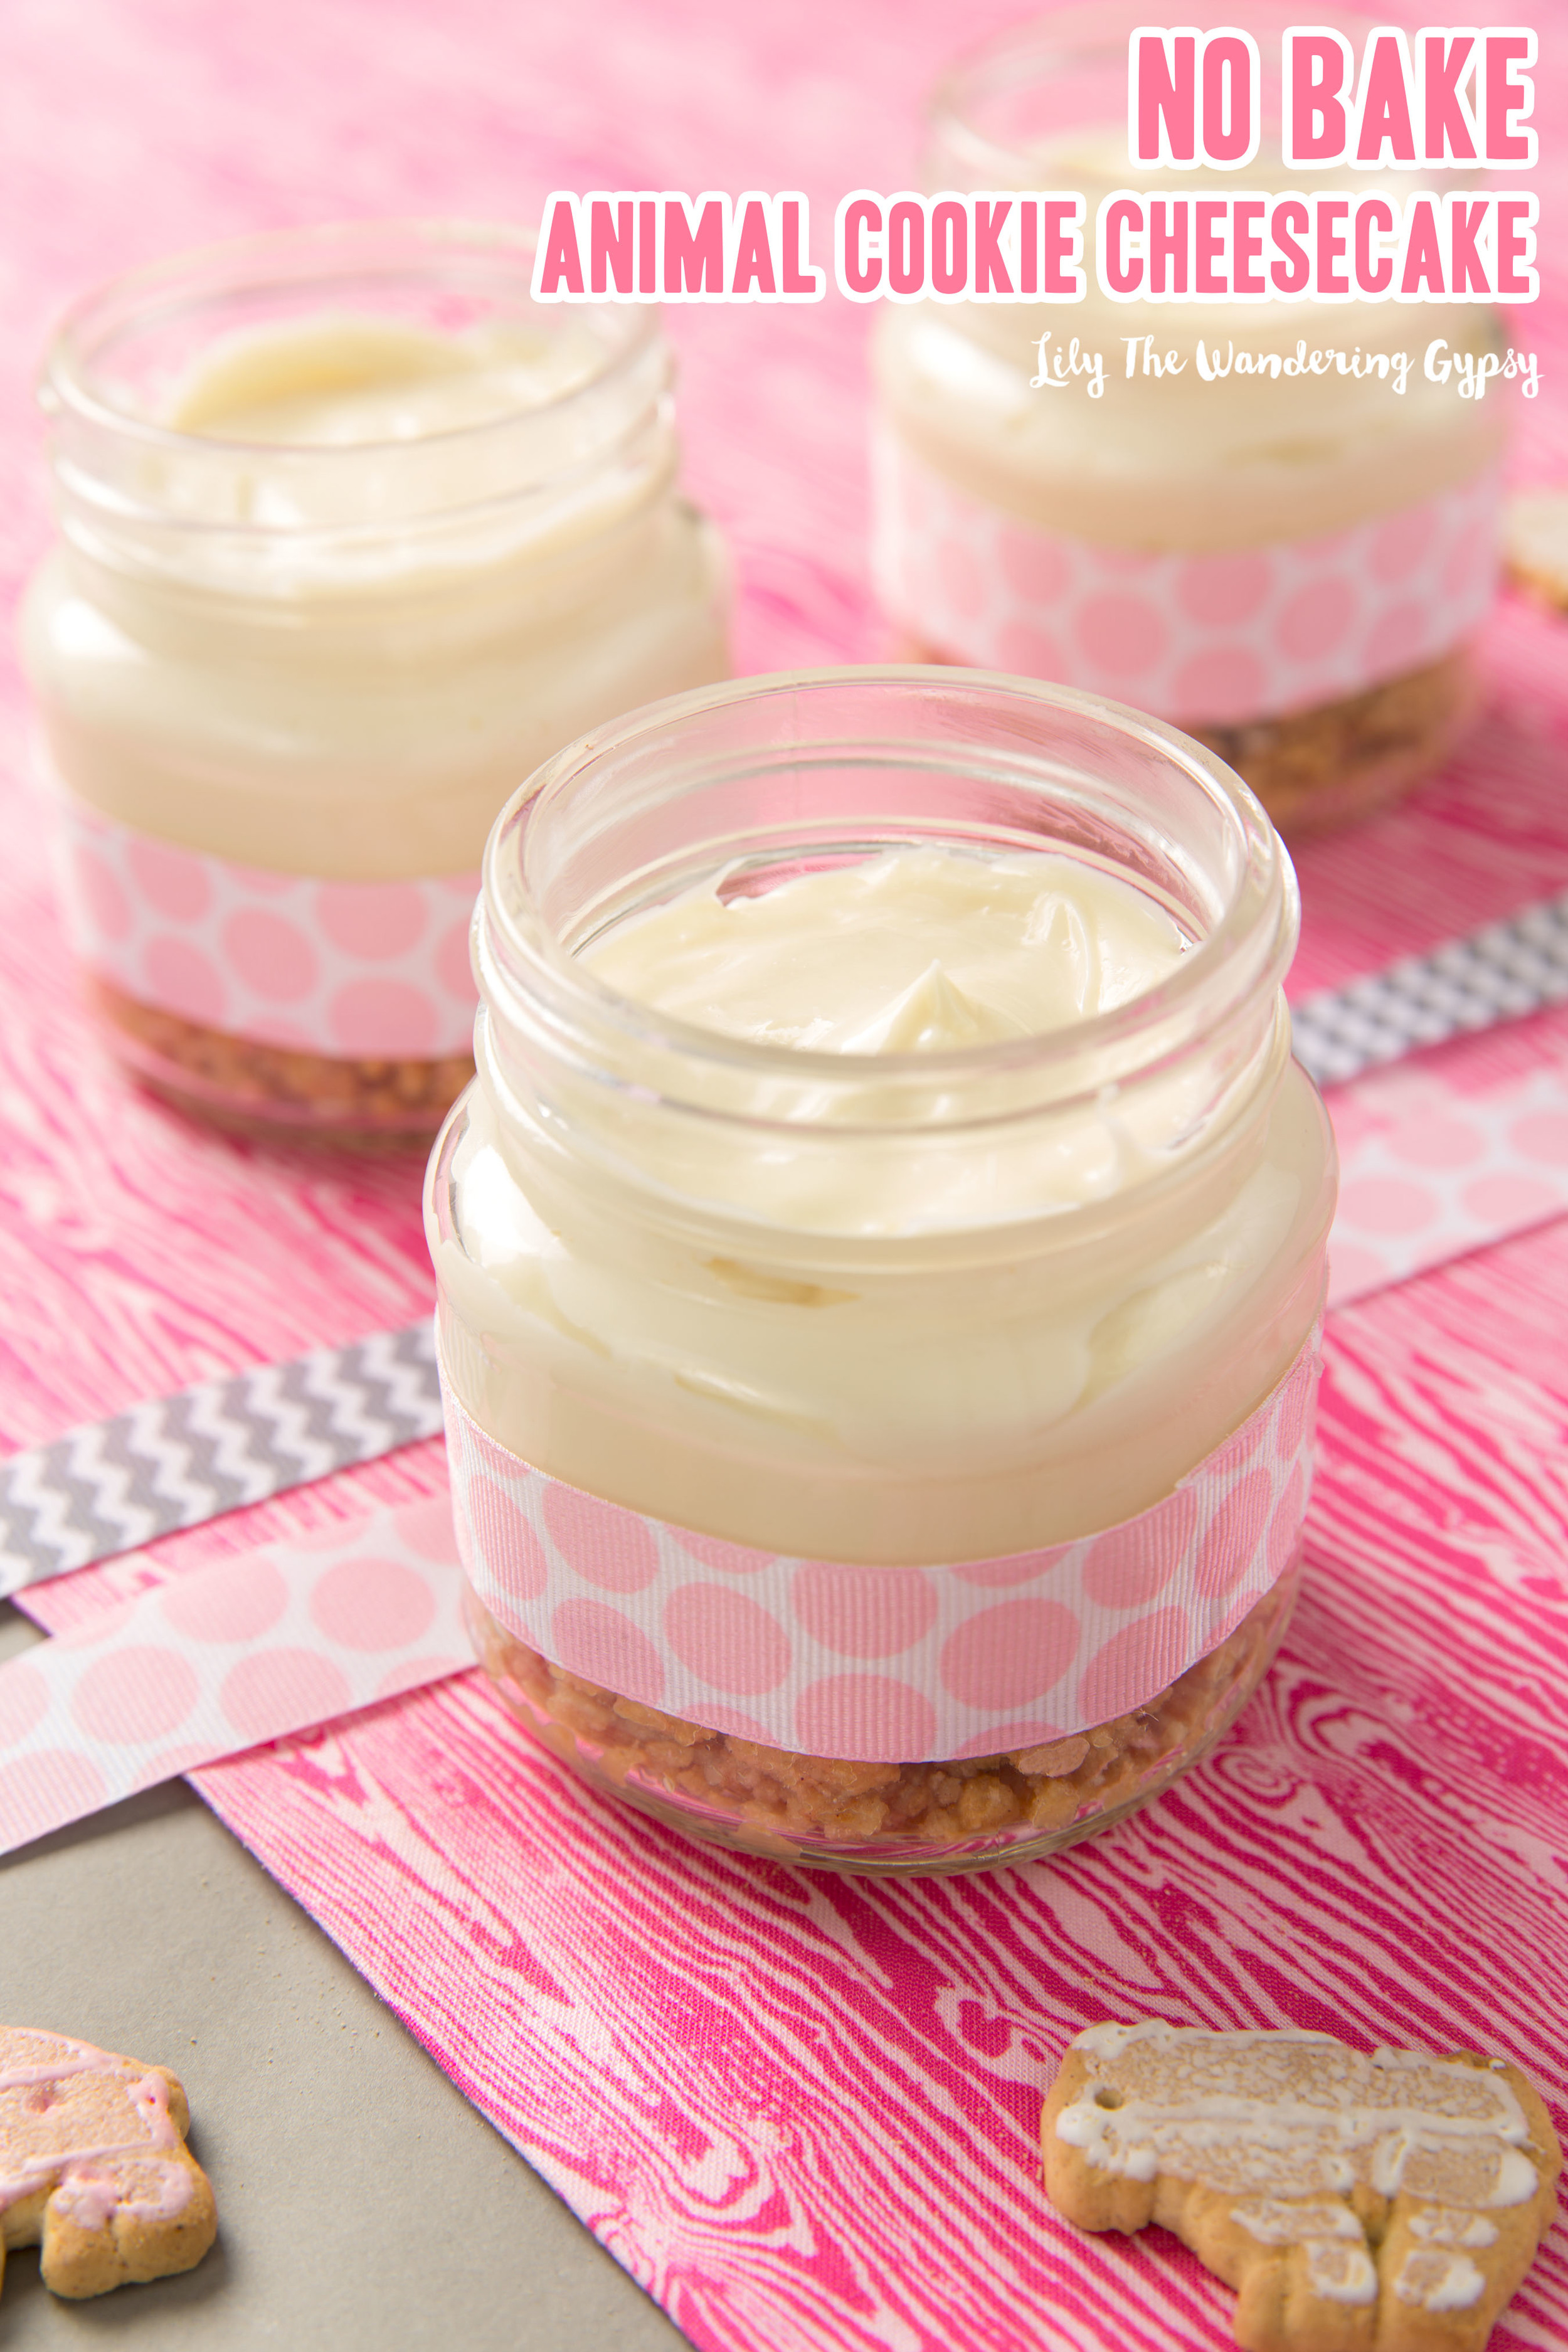 Mix up your filling and carefully spoon the filling into each jar.